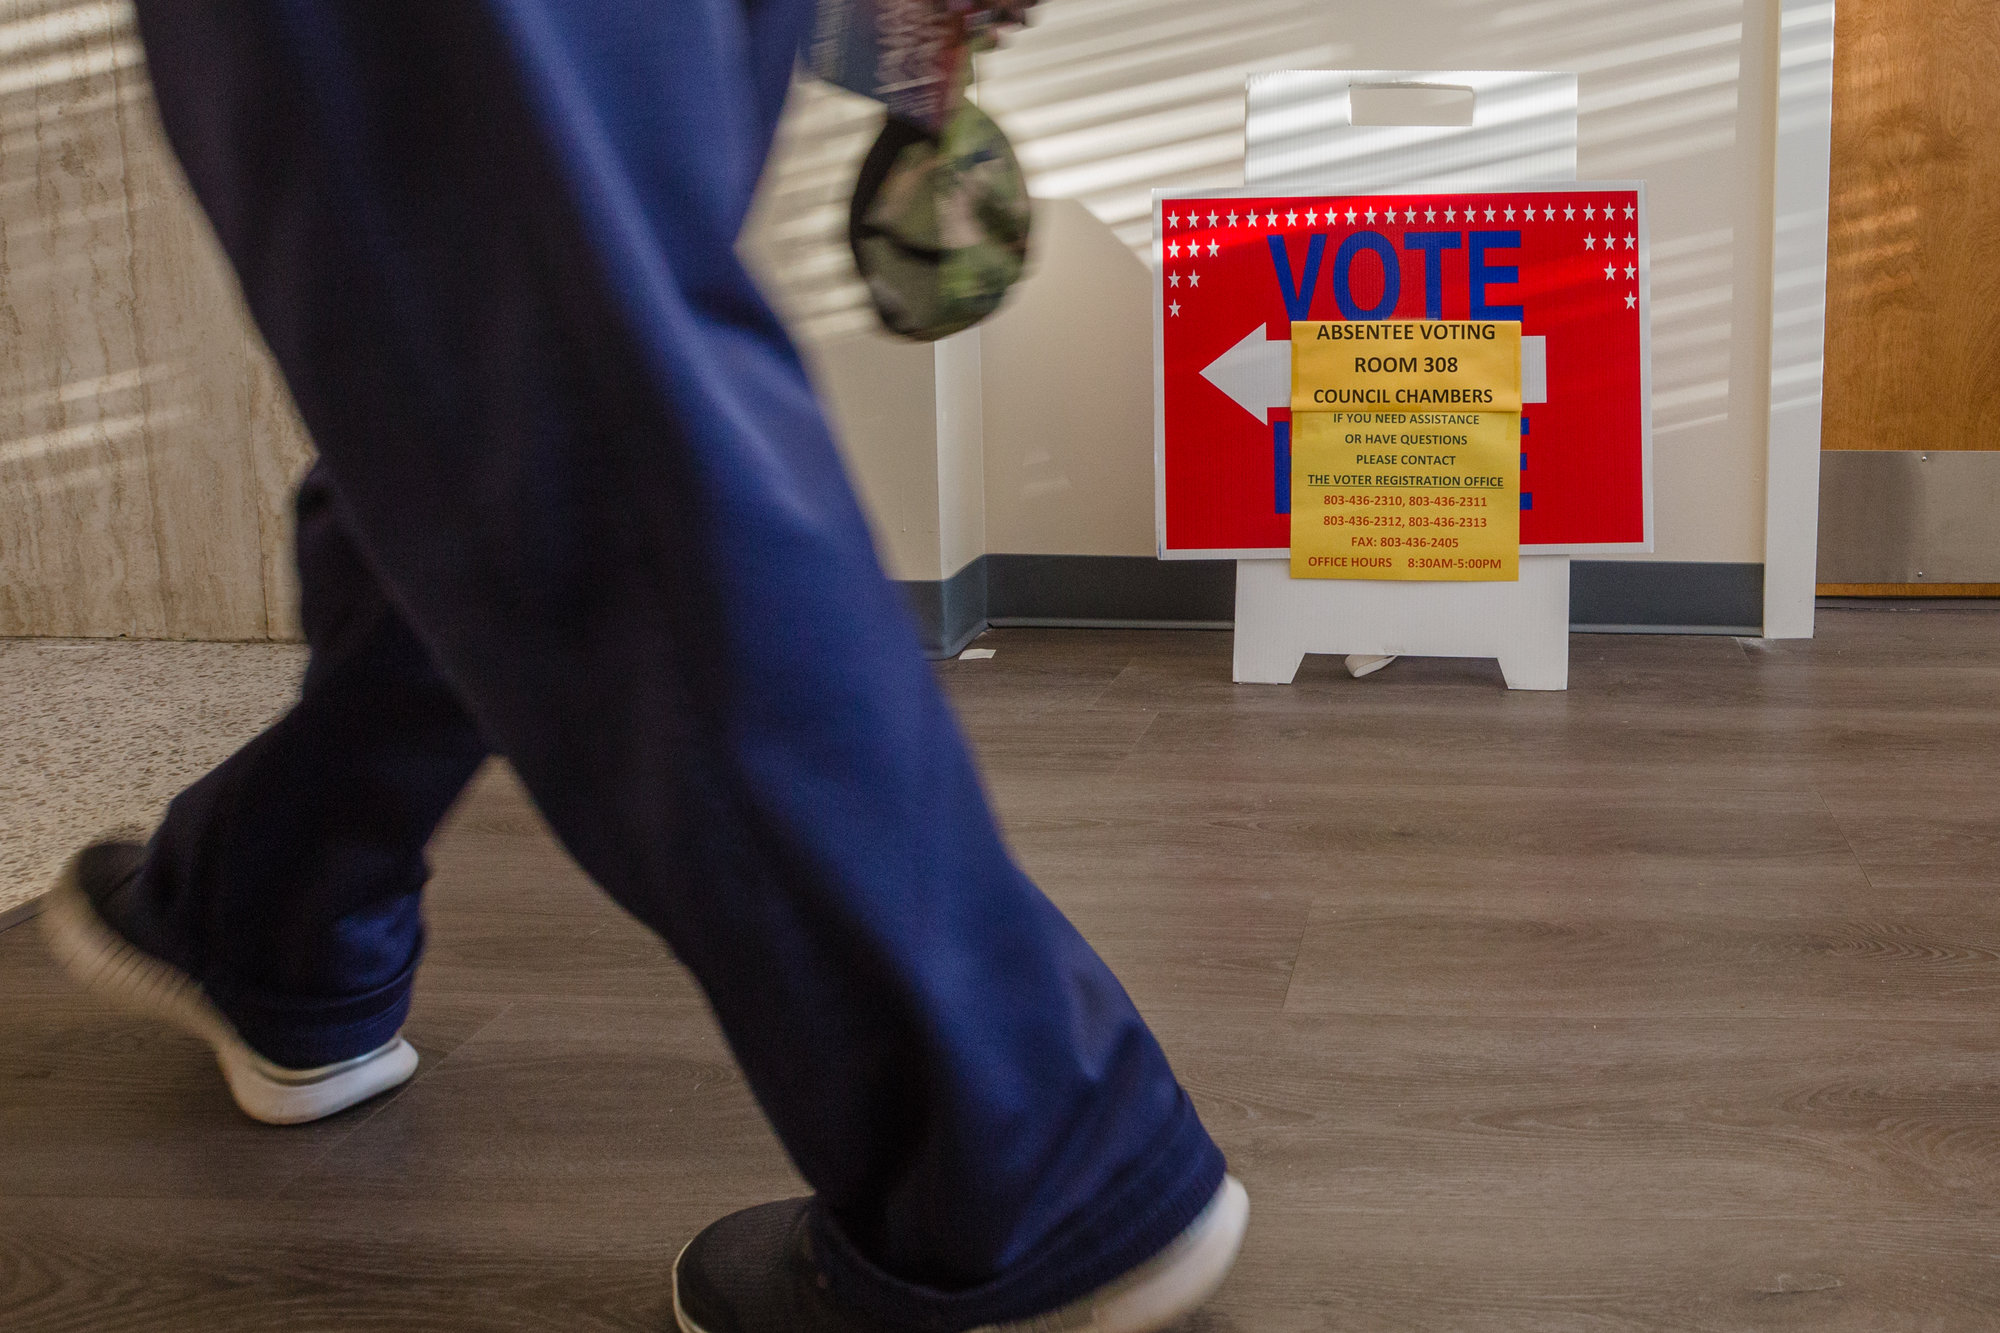 Voting signs are seen inside a polling location at the old Sumter County courthouse on Wednesday, Oct. 14.